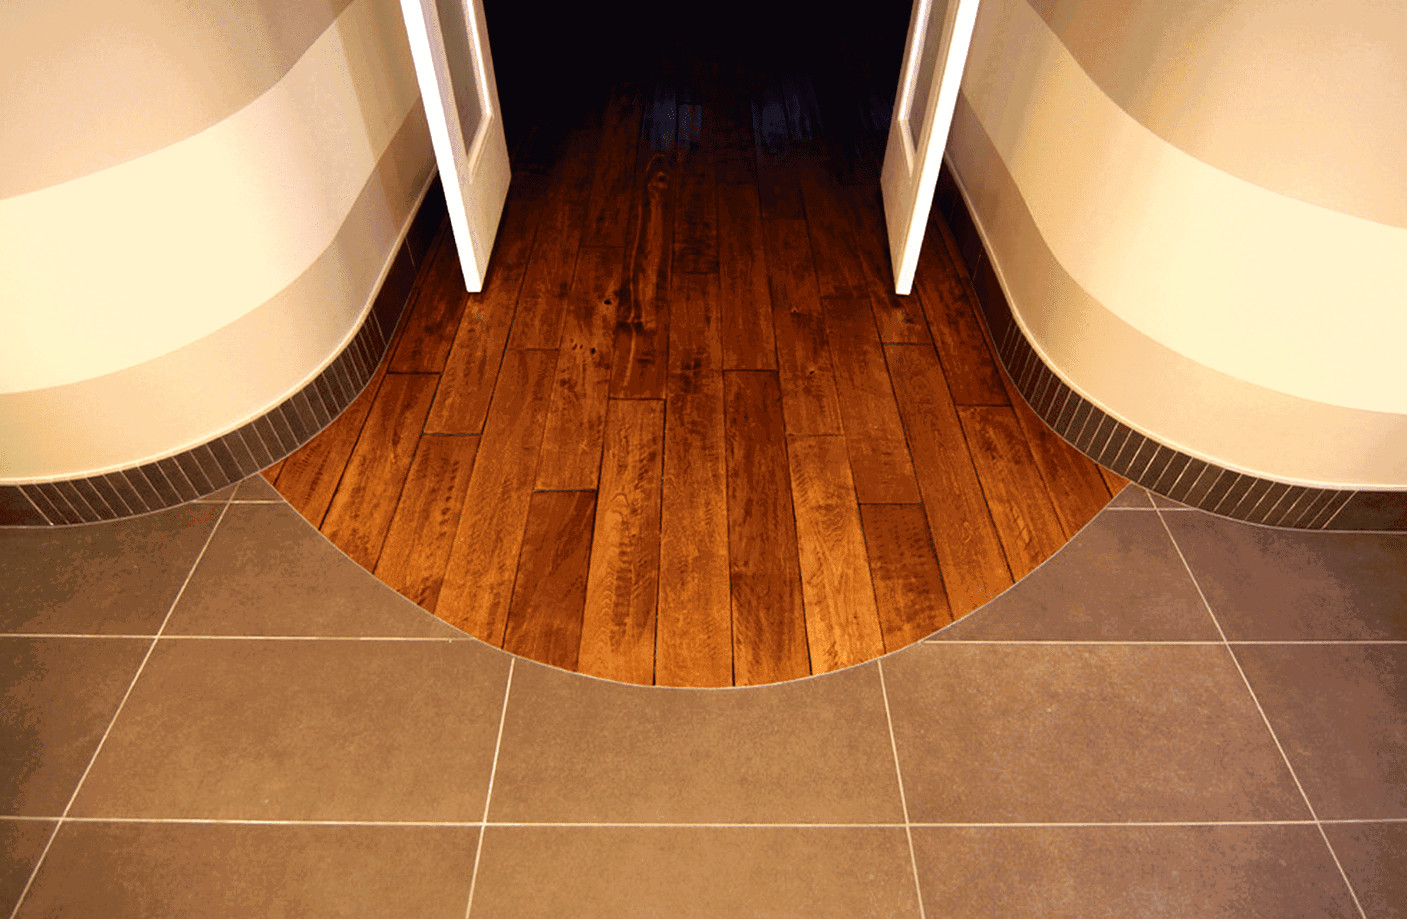 hardwood floor fireplace transition of lovely pleasant mooth transition hardwood flooring tile fantastic pertaining to charming splendid mooth transition hardwood flooring tile improbable smooth transition hardwood flooring tile